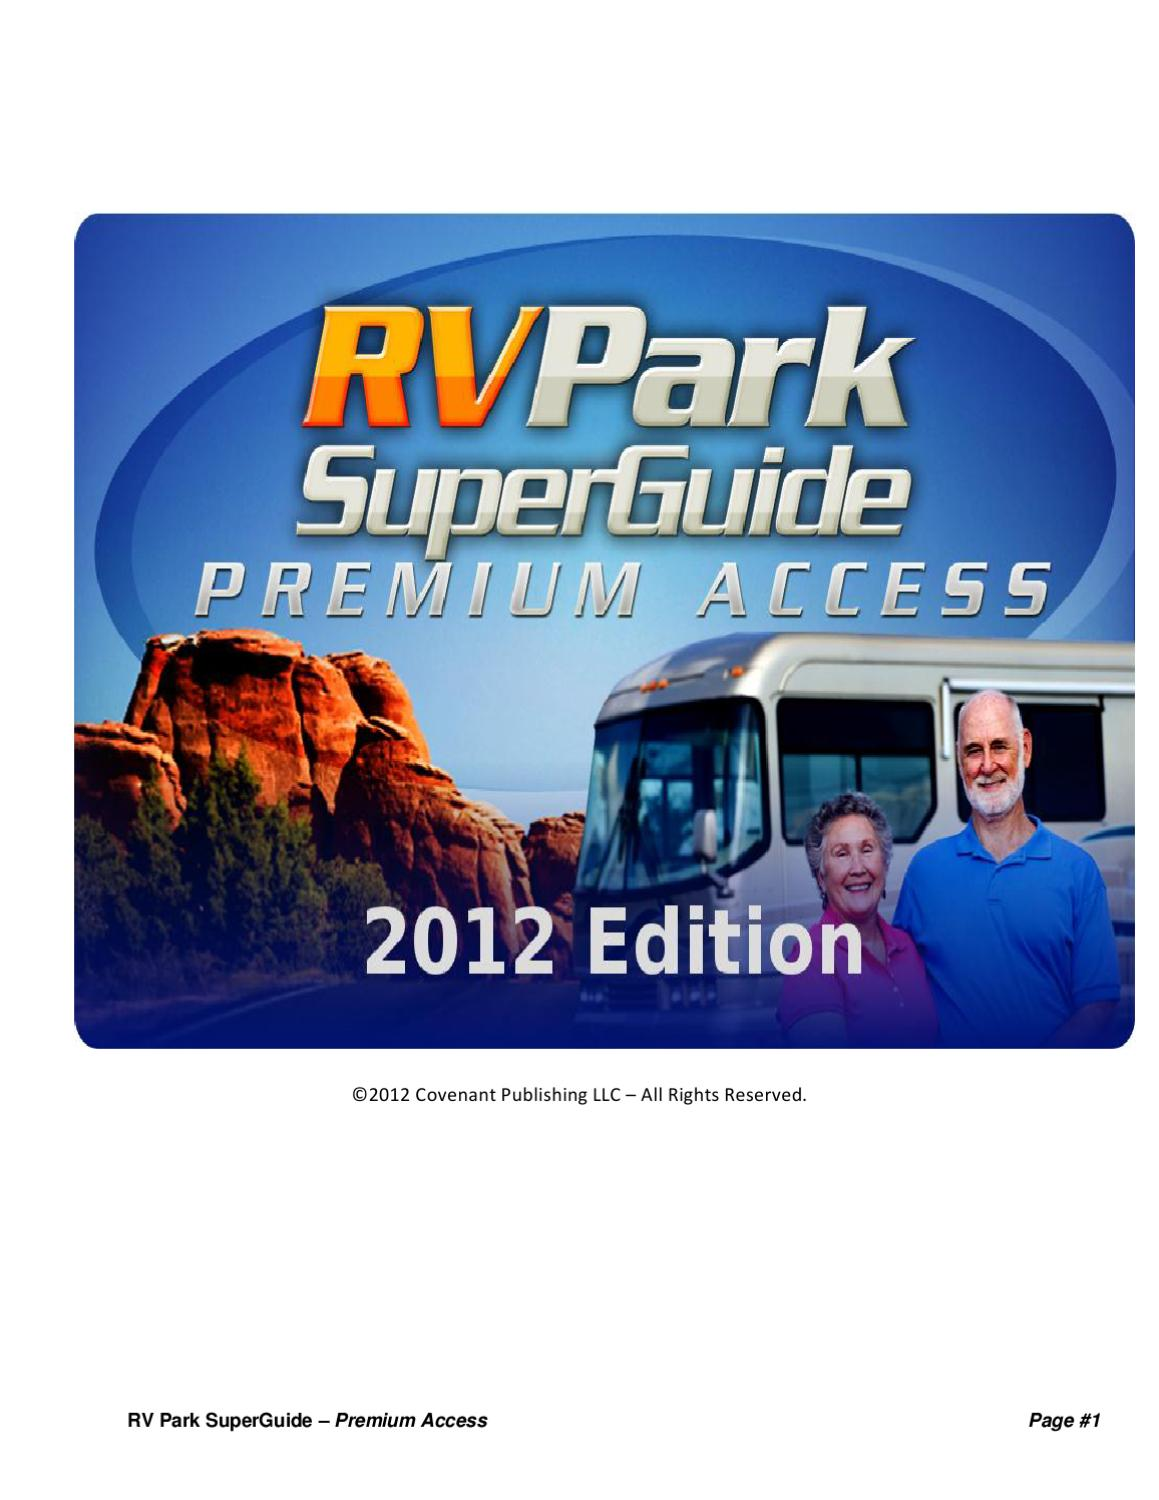 RV Park SuperGuide By Andrea William